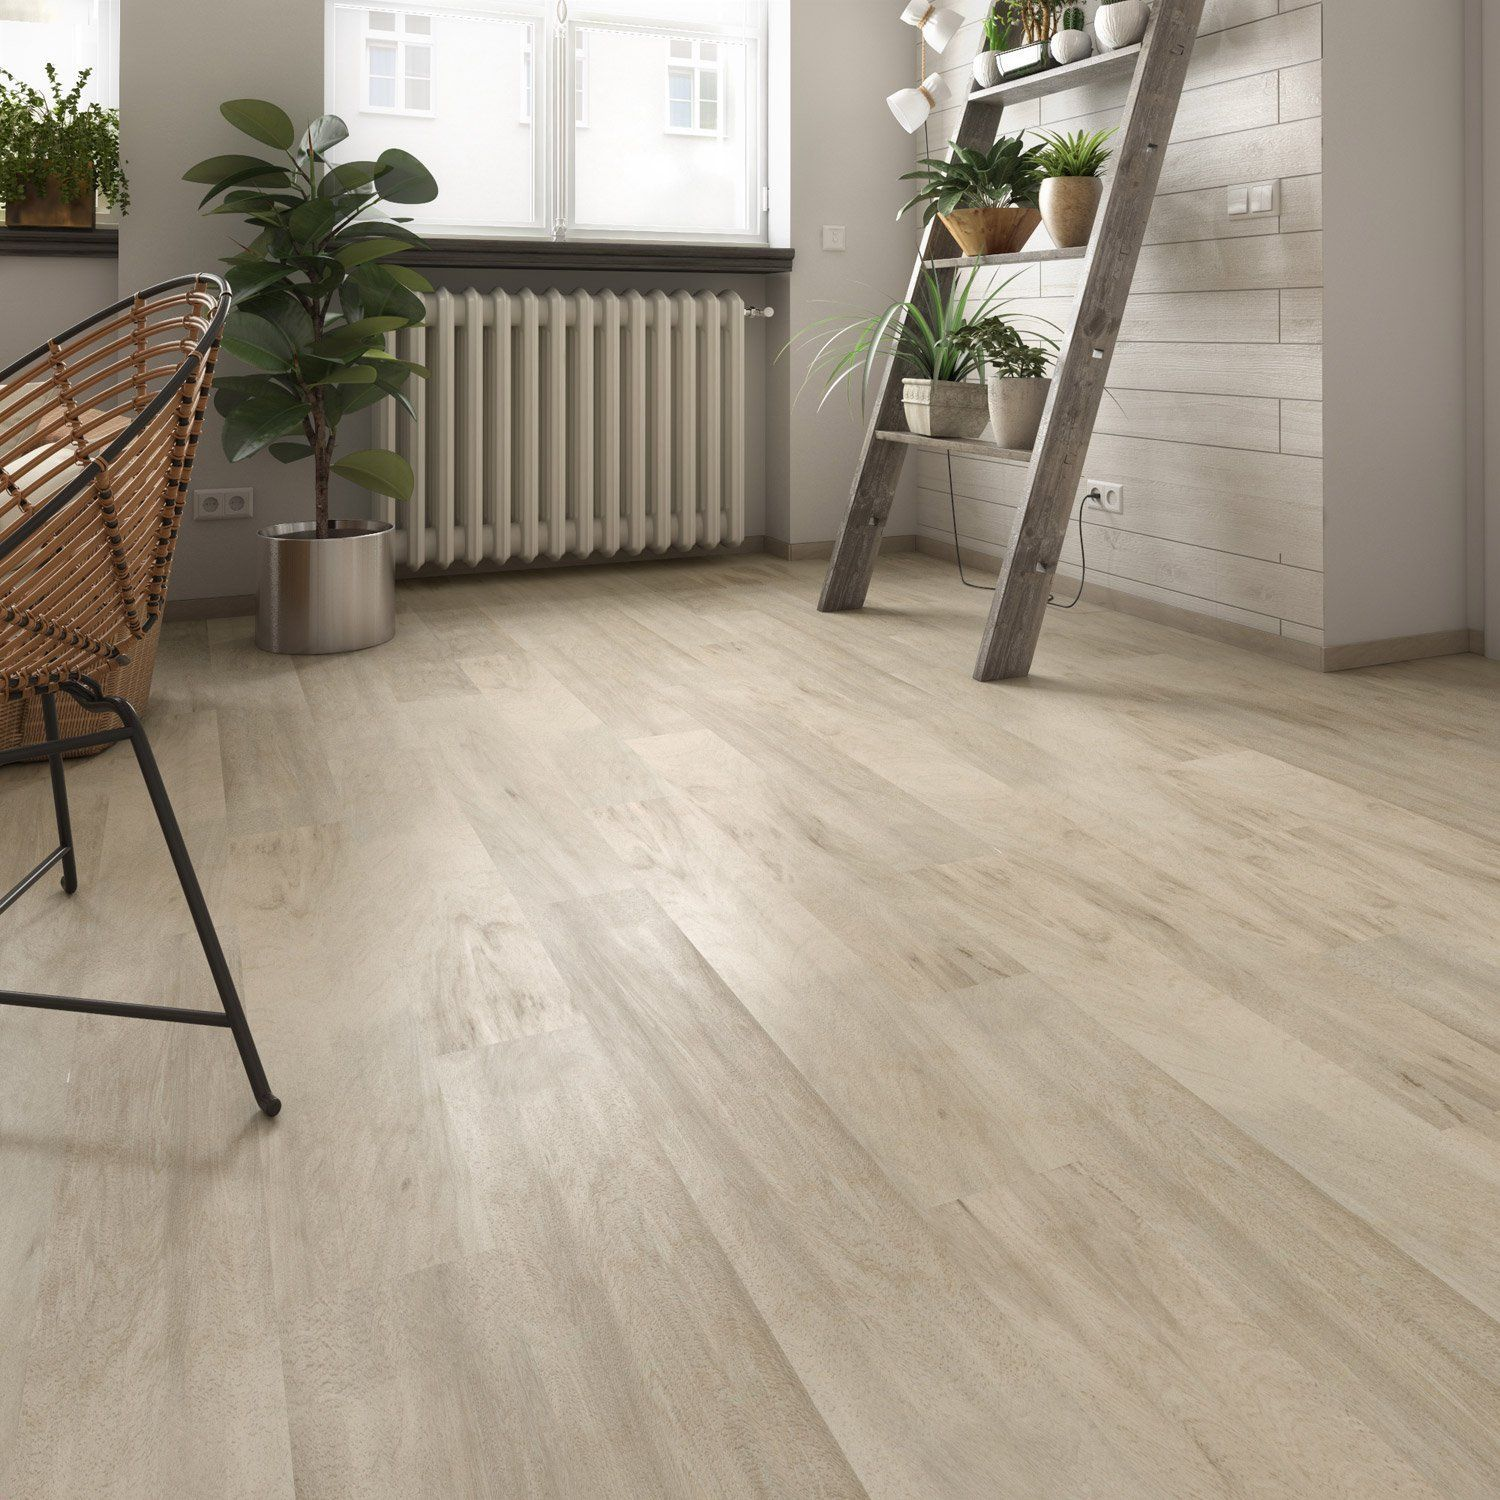 lame de sol pvc leroy merlin promo lame pvc clipsable authentic blond gerflor senso premium pas - Sol Pvc Clipsable Pas Cher